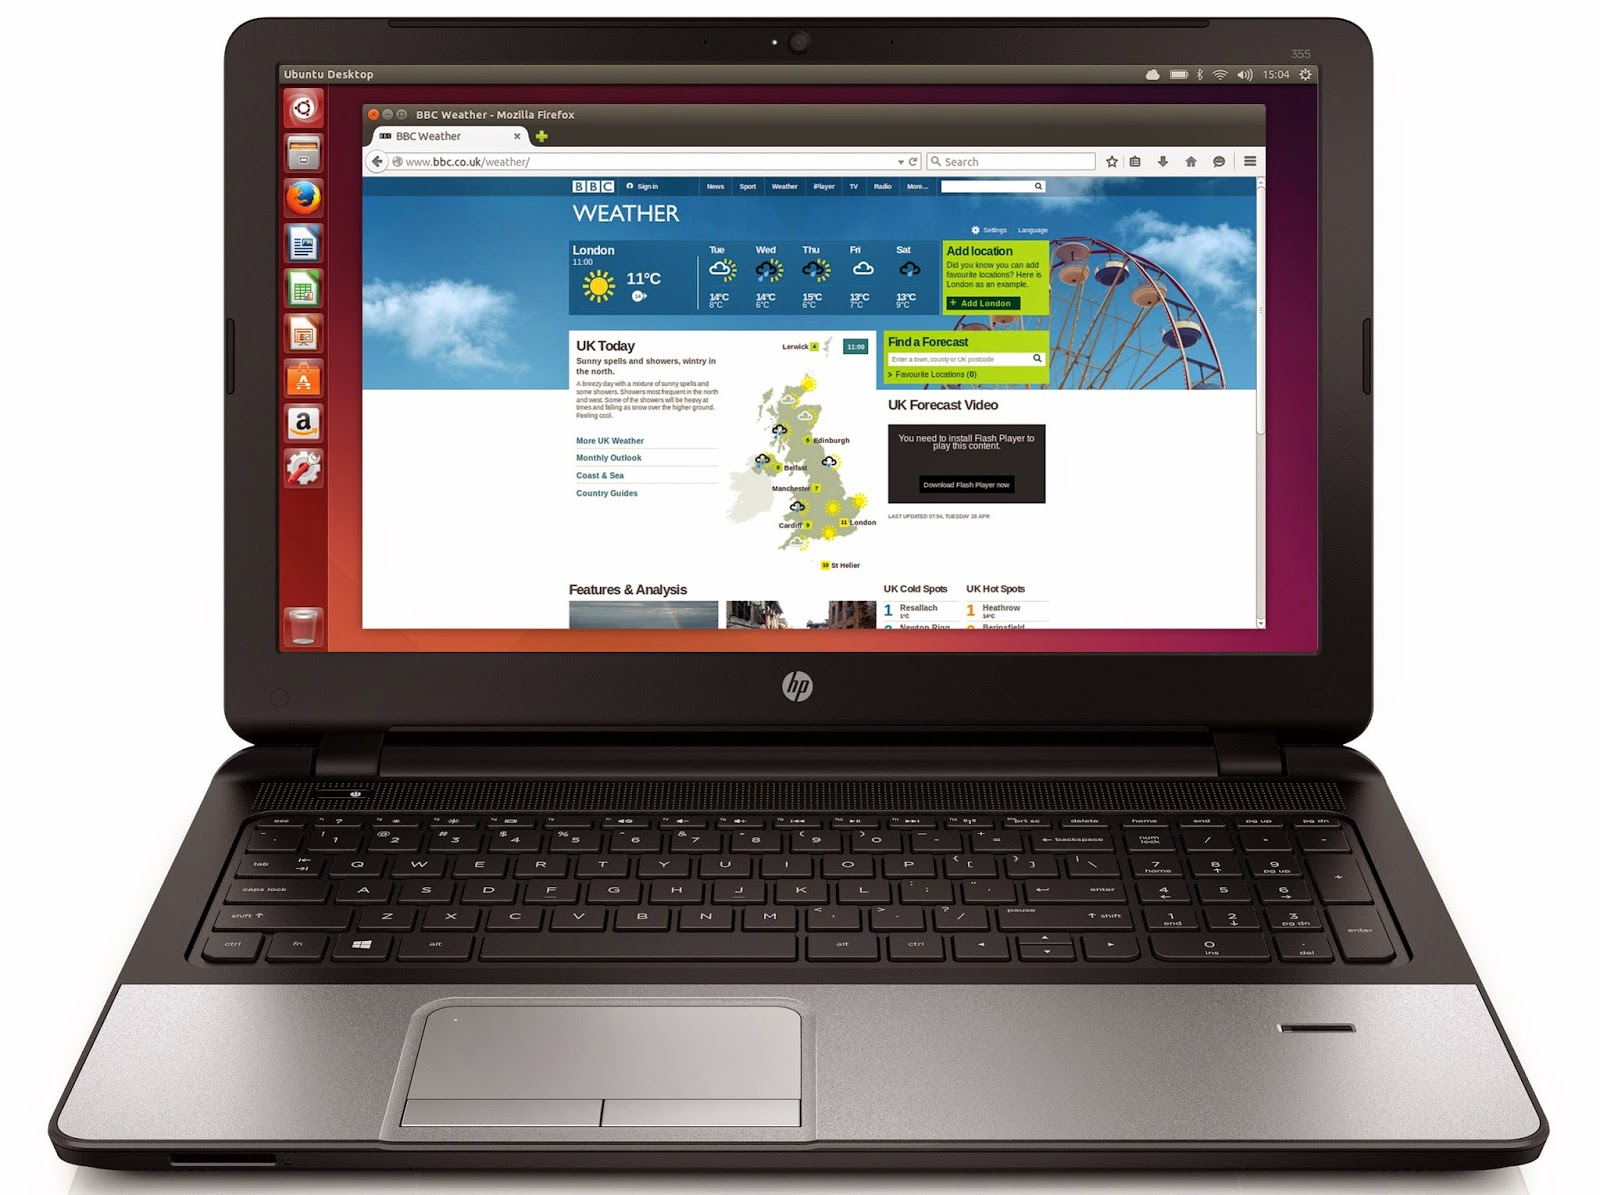 AMD powered hp ubuntu laptops